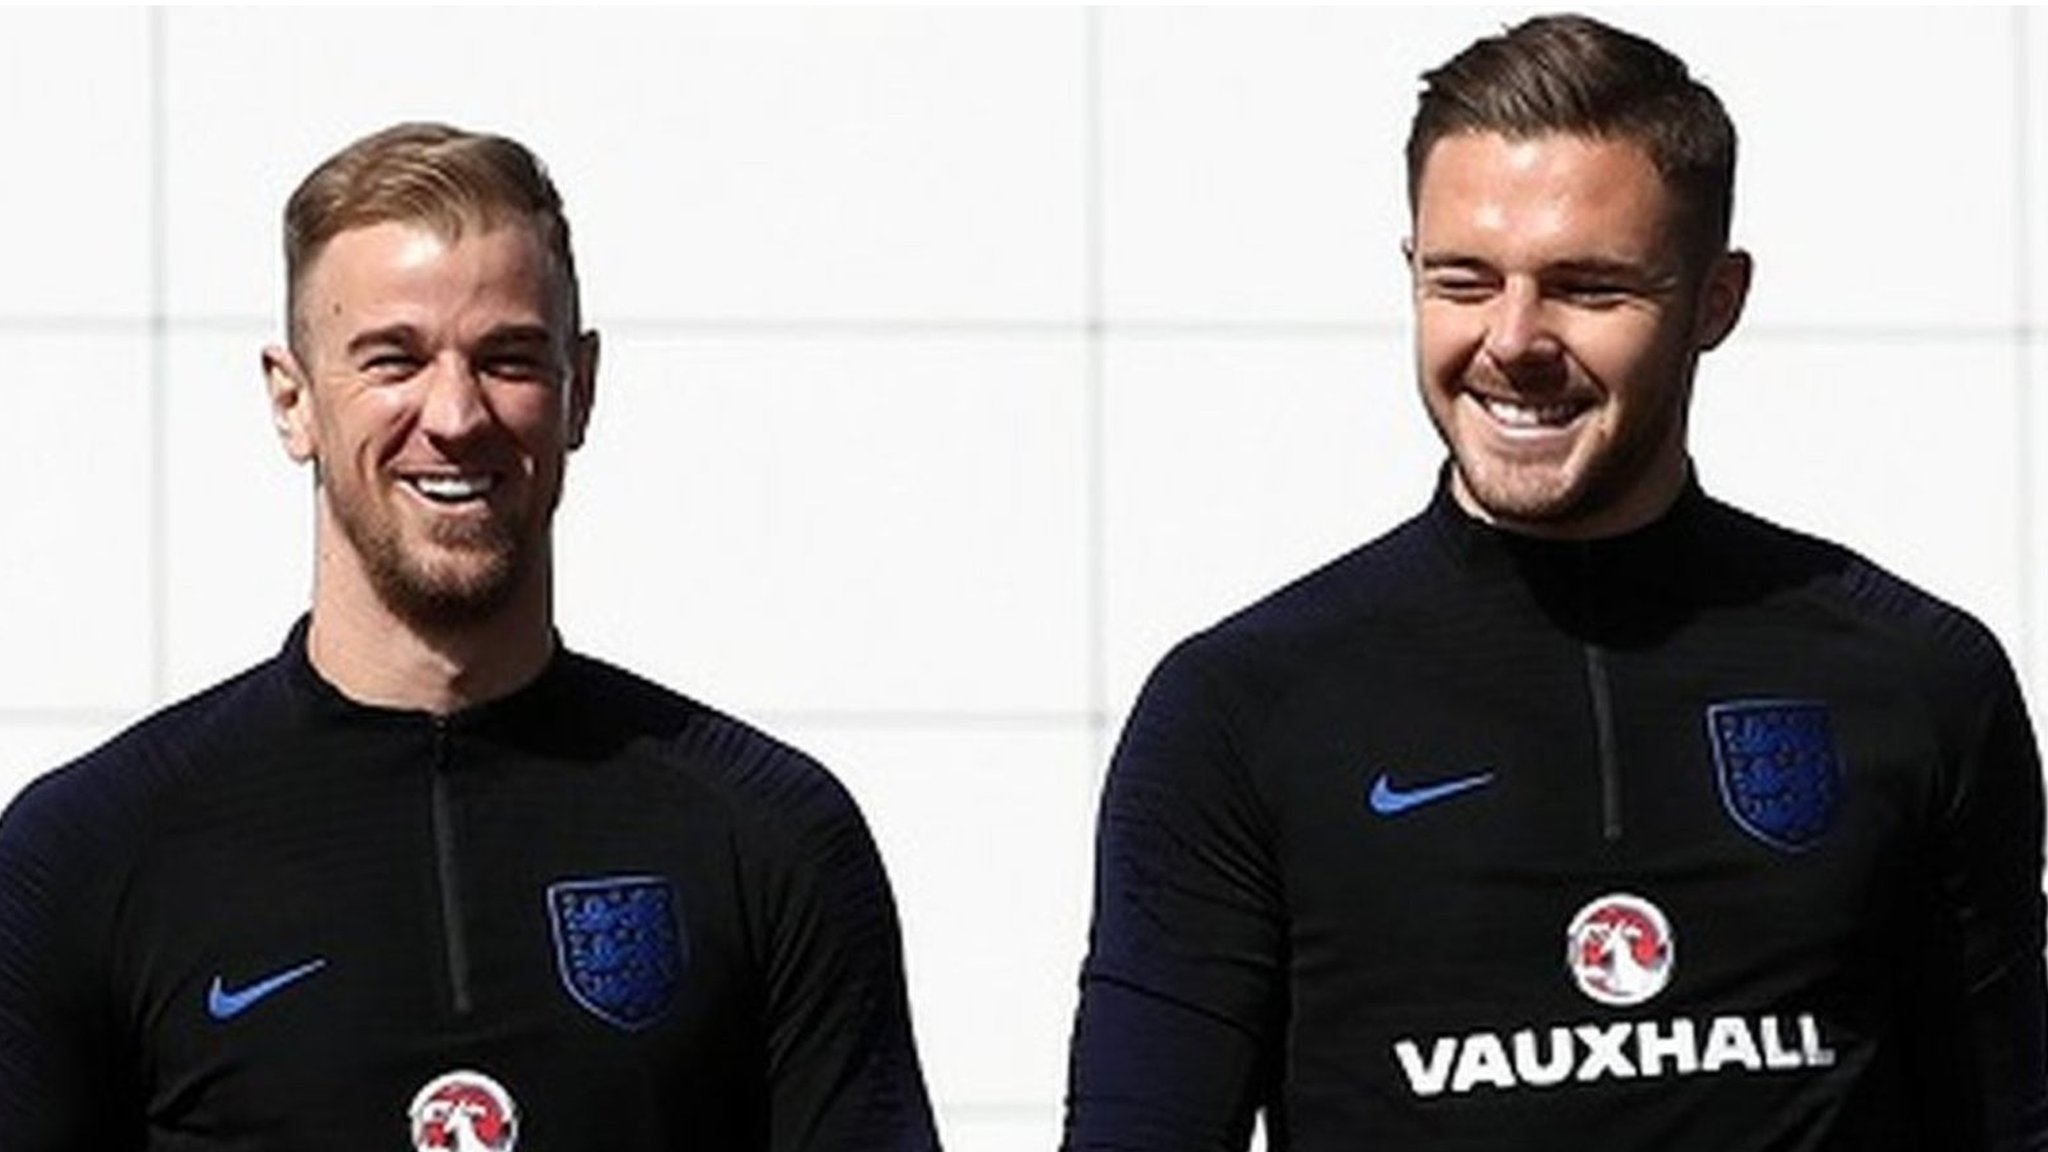 Butland spoke to 'devastated hero' Hart after England omission